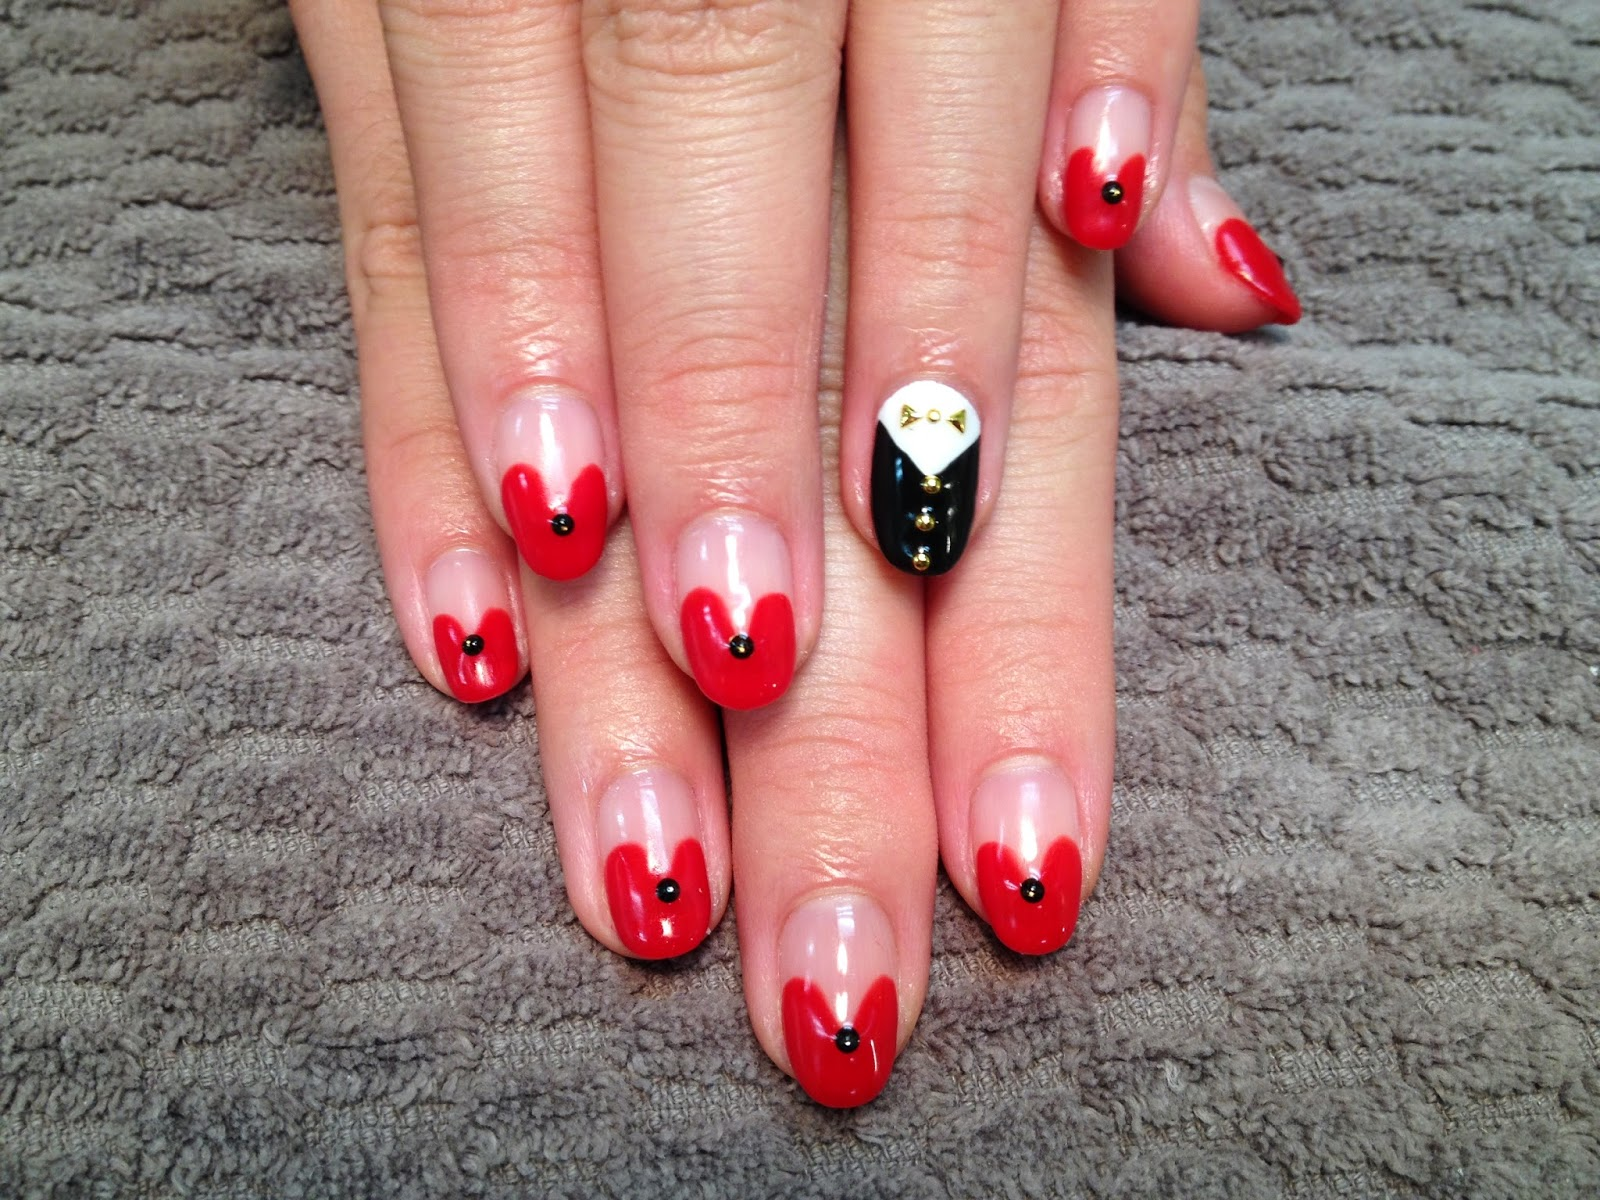 February nail designs image collections nail art and nail design ys nail blog spring nail designs phonetext 425 320 7261 email ysnail3gmail online bookingvagaroysnail please see prinsesfo Image collections